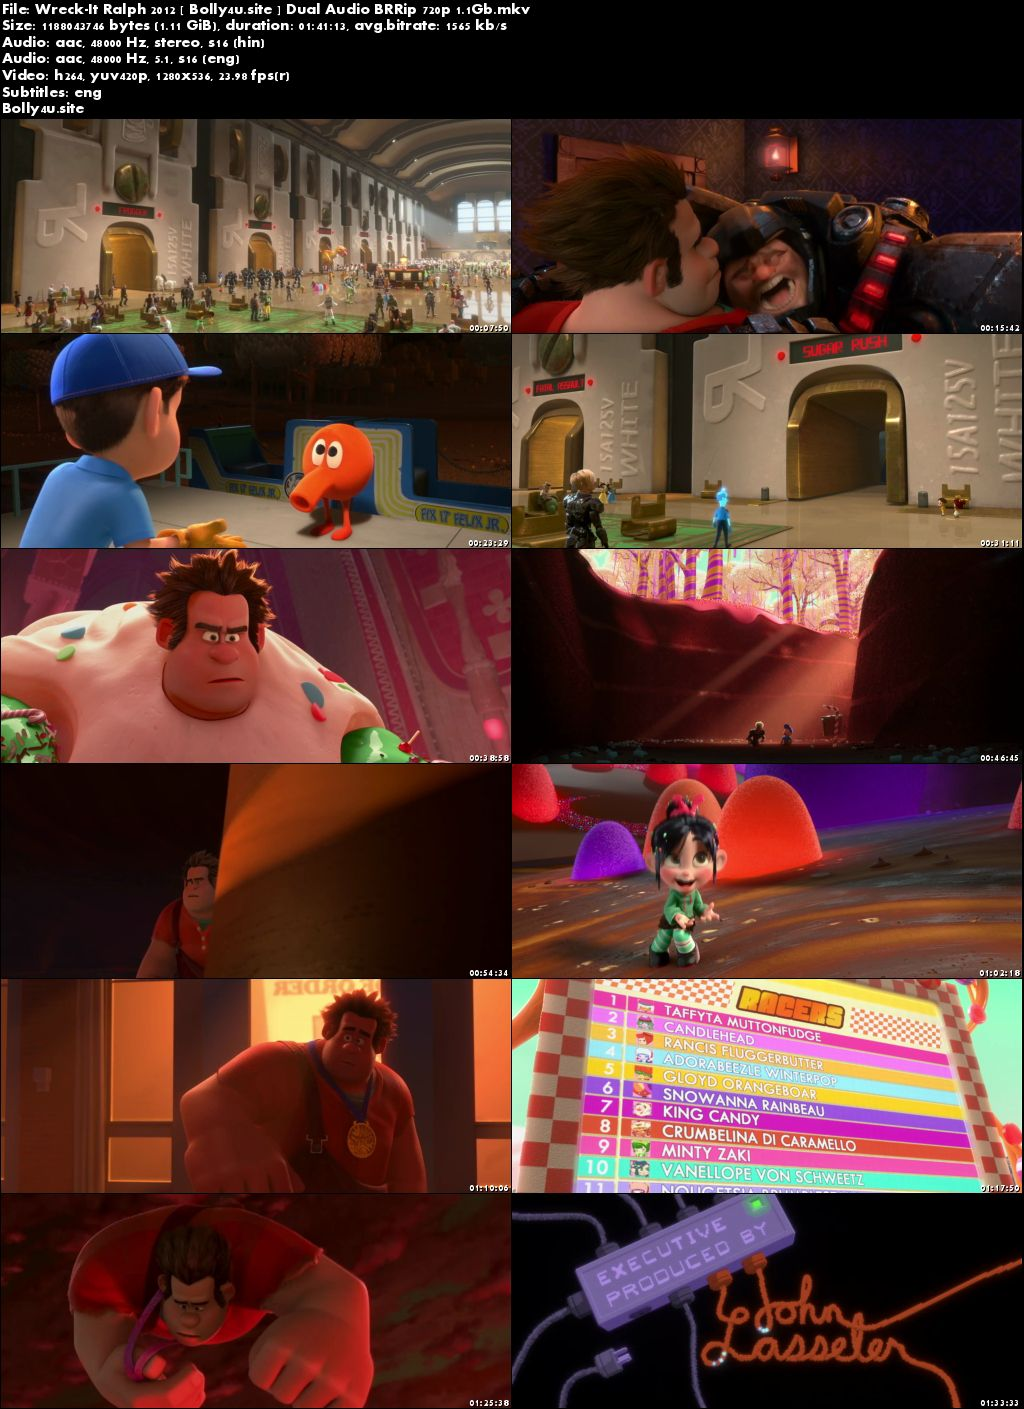 Wreck-It Ralph 2012 BRRip Hindi Dual Audio 720p ESub Download